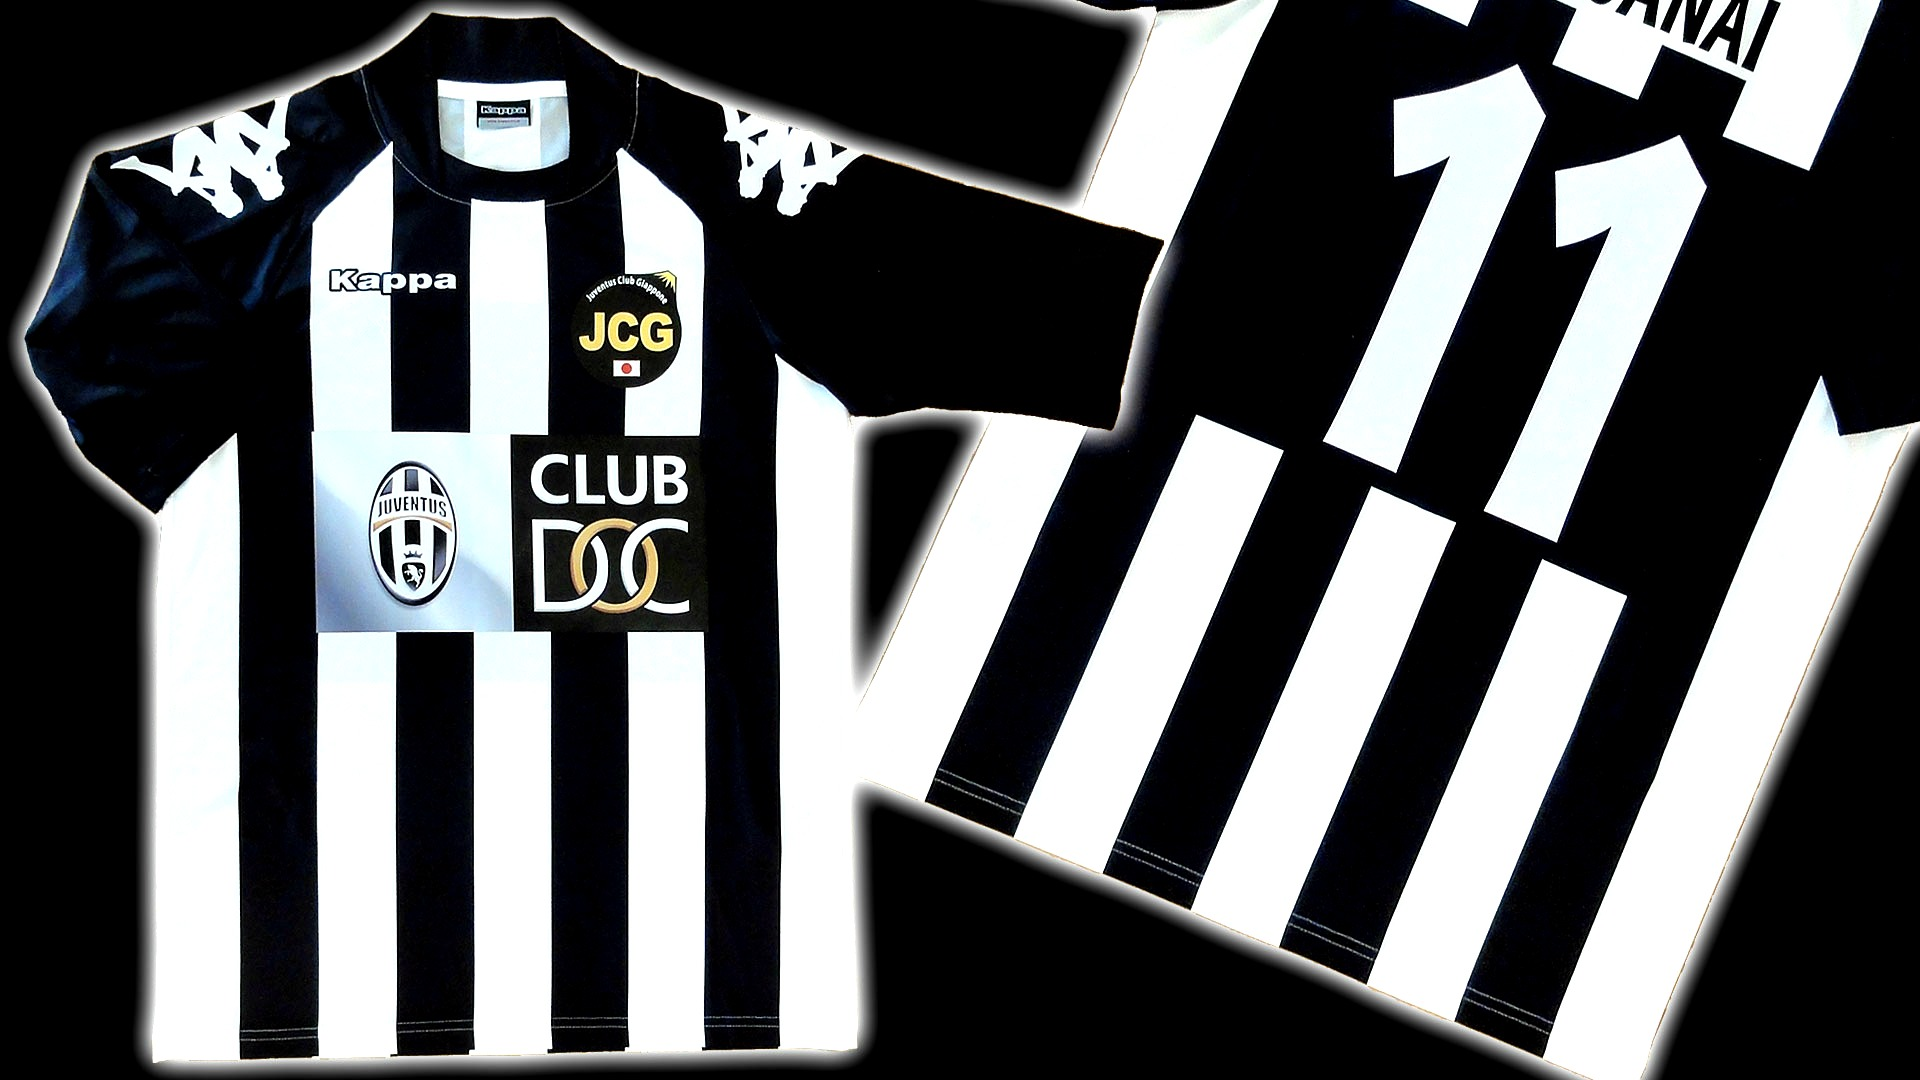 Juventus Club Giappone official Jersey